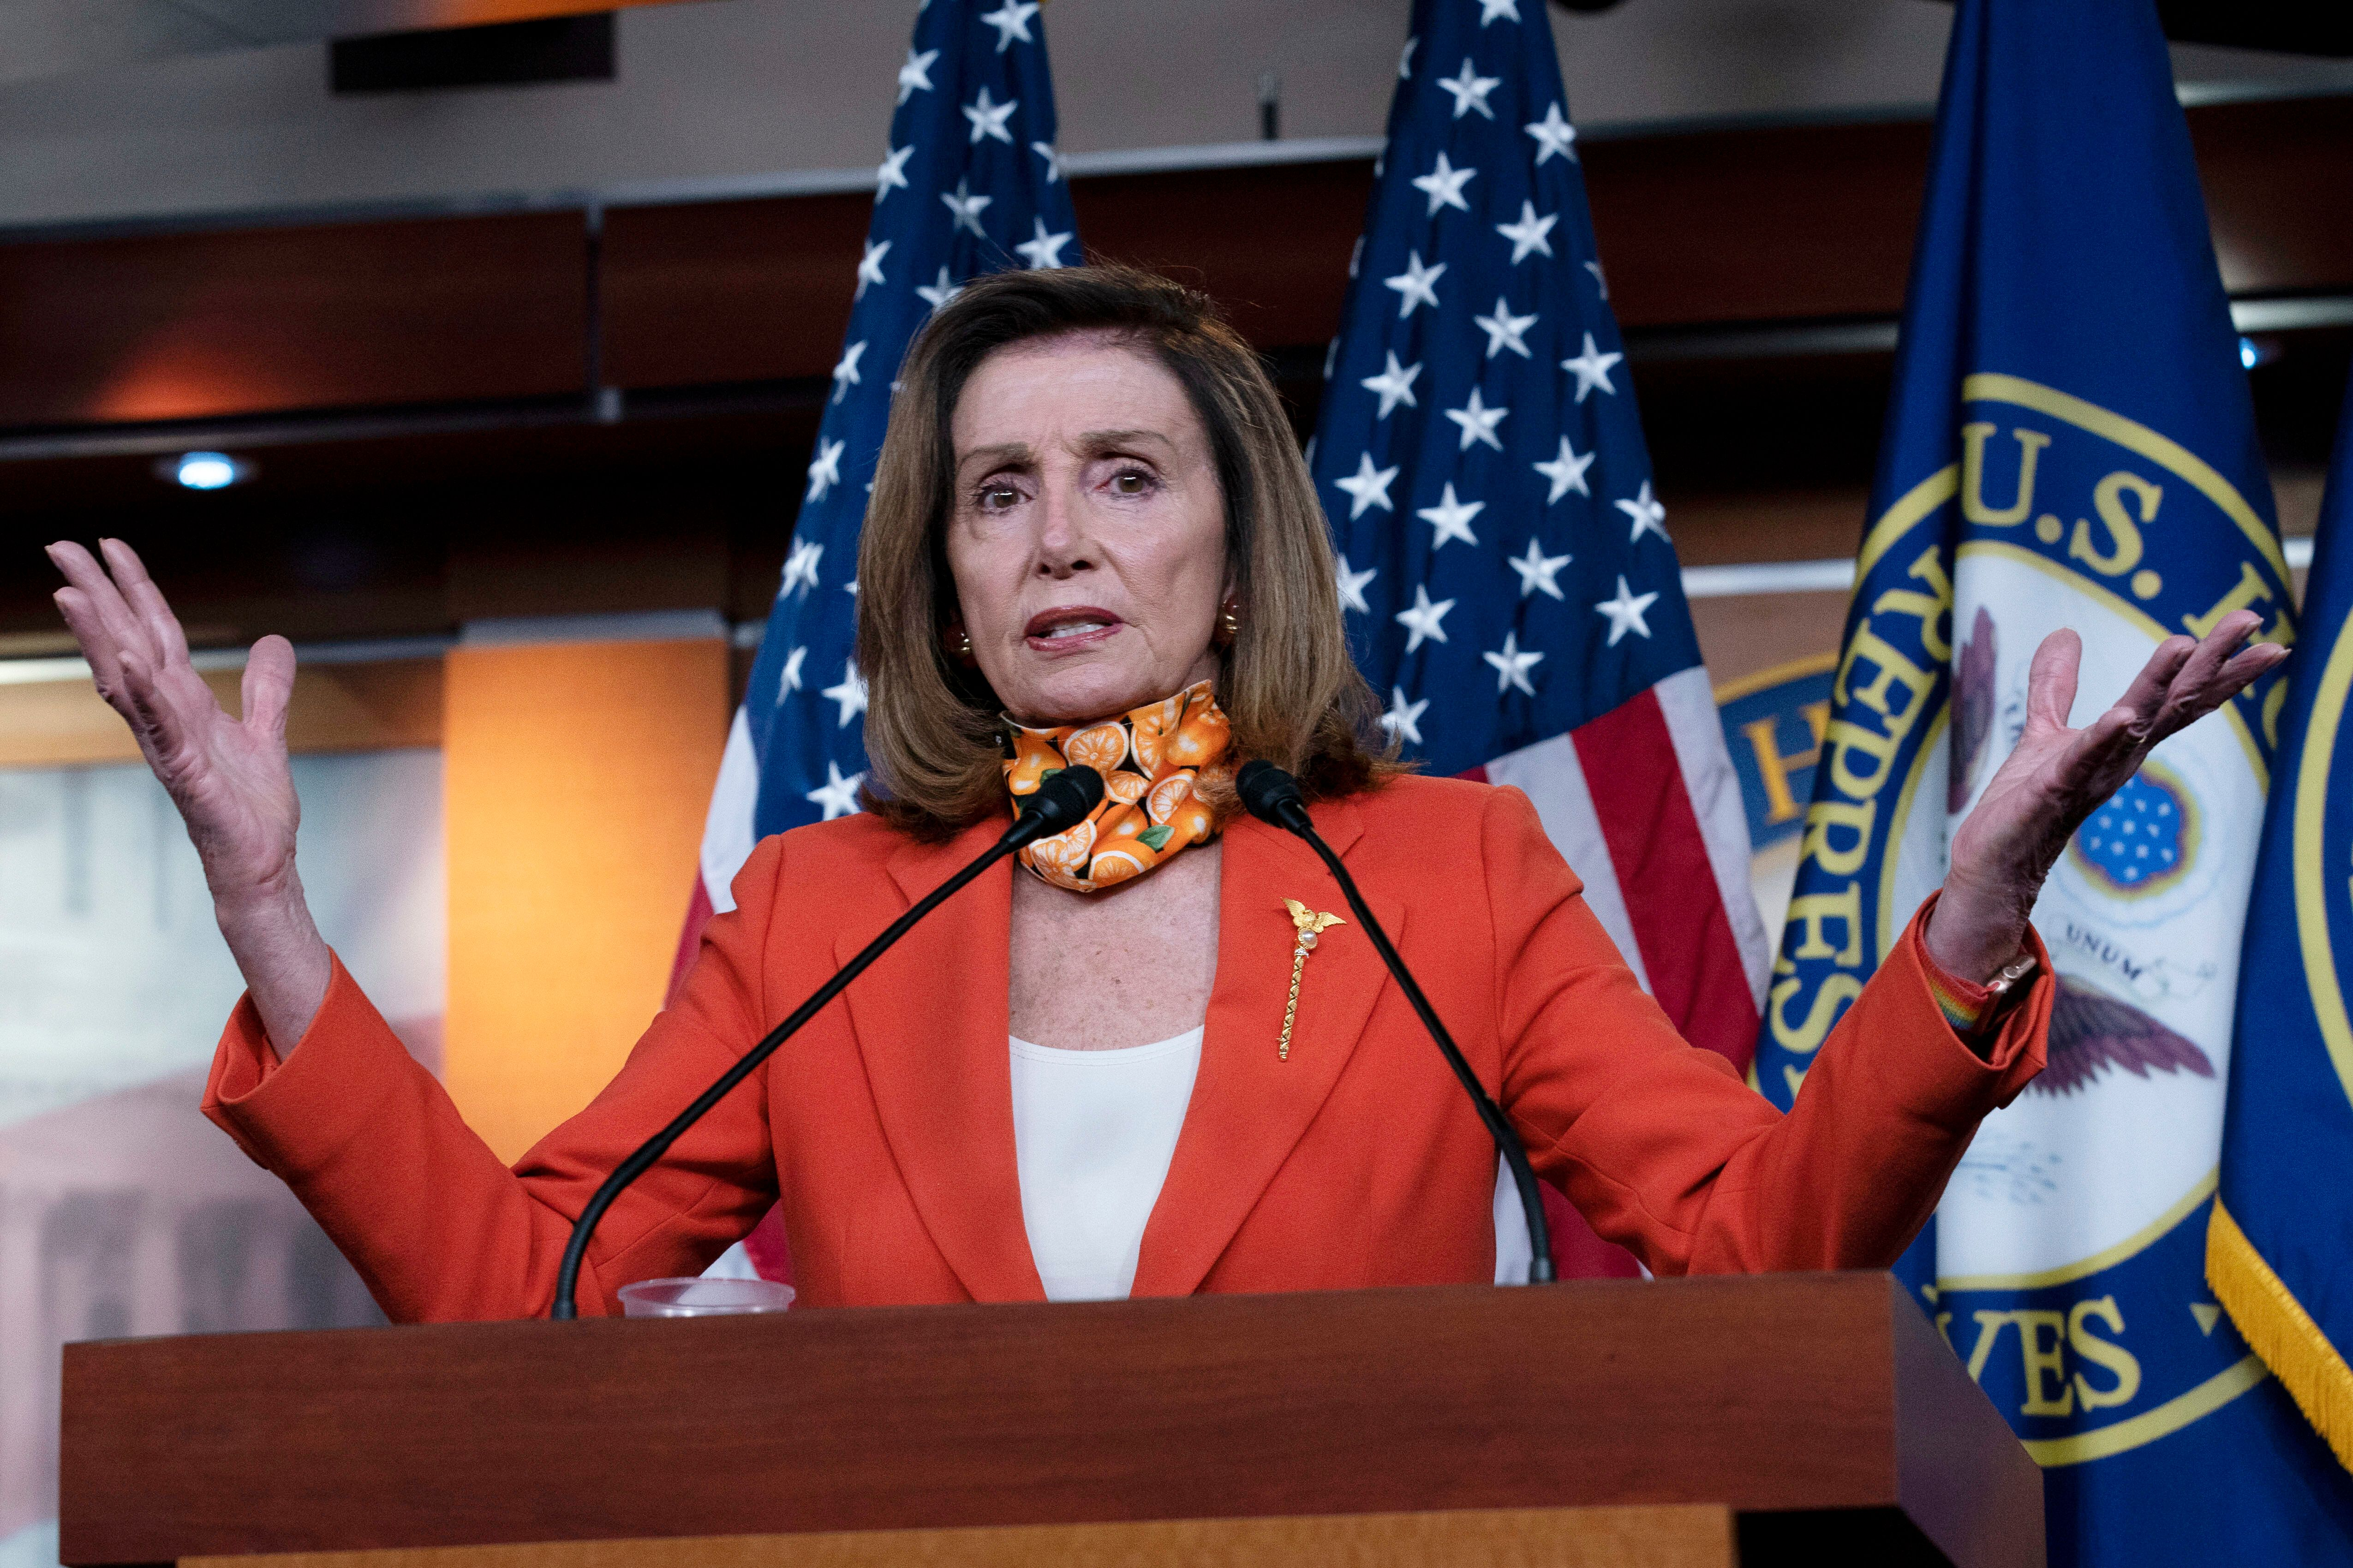 Pelosi Slams Trump Executive Order As 'Insult' To Those With Preexisting Conditions